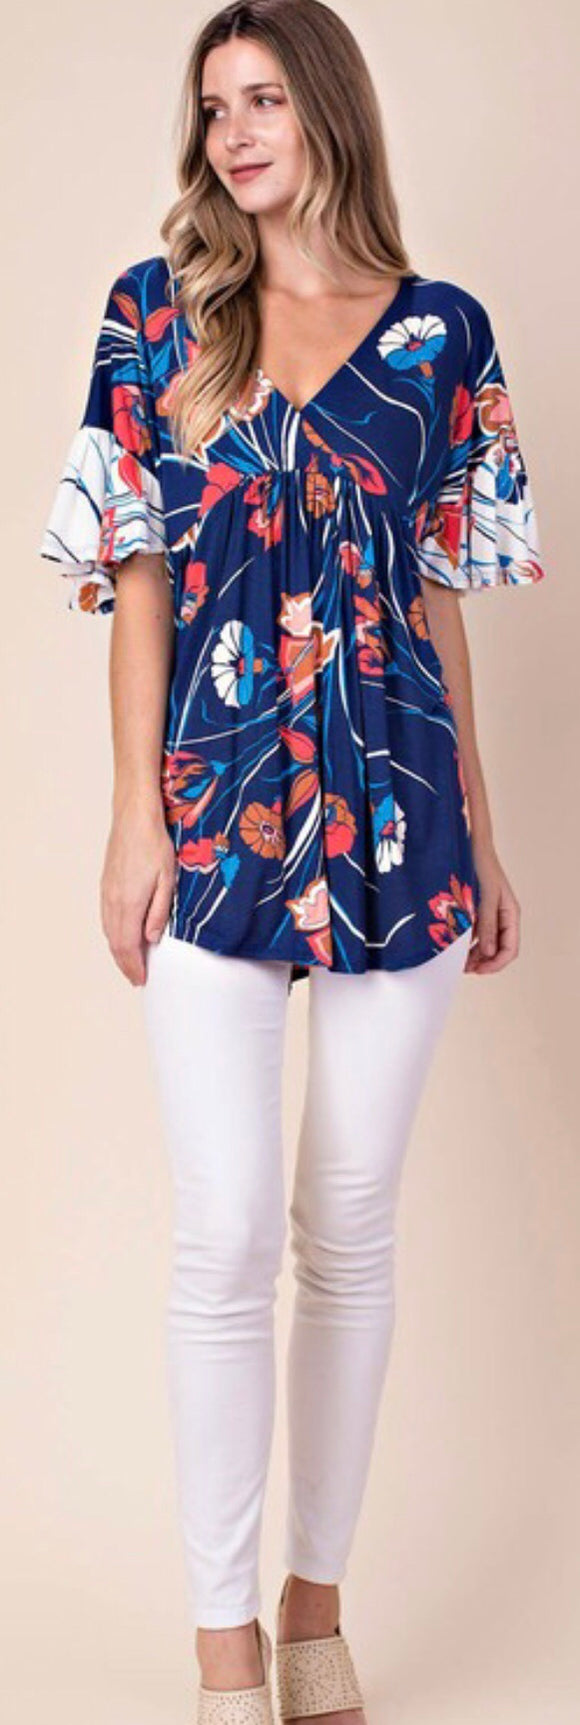 Navy Multi Floral Top